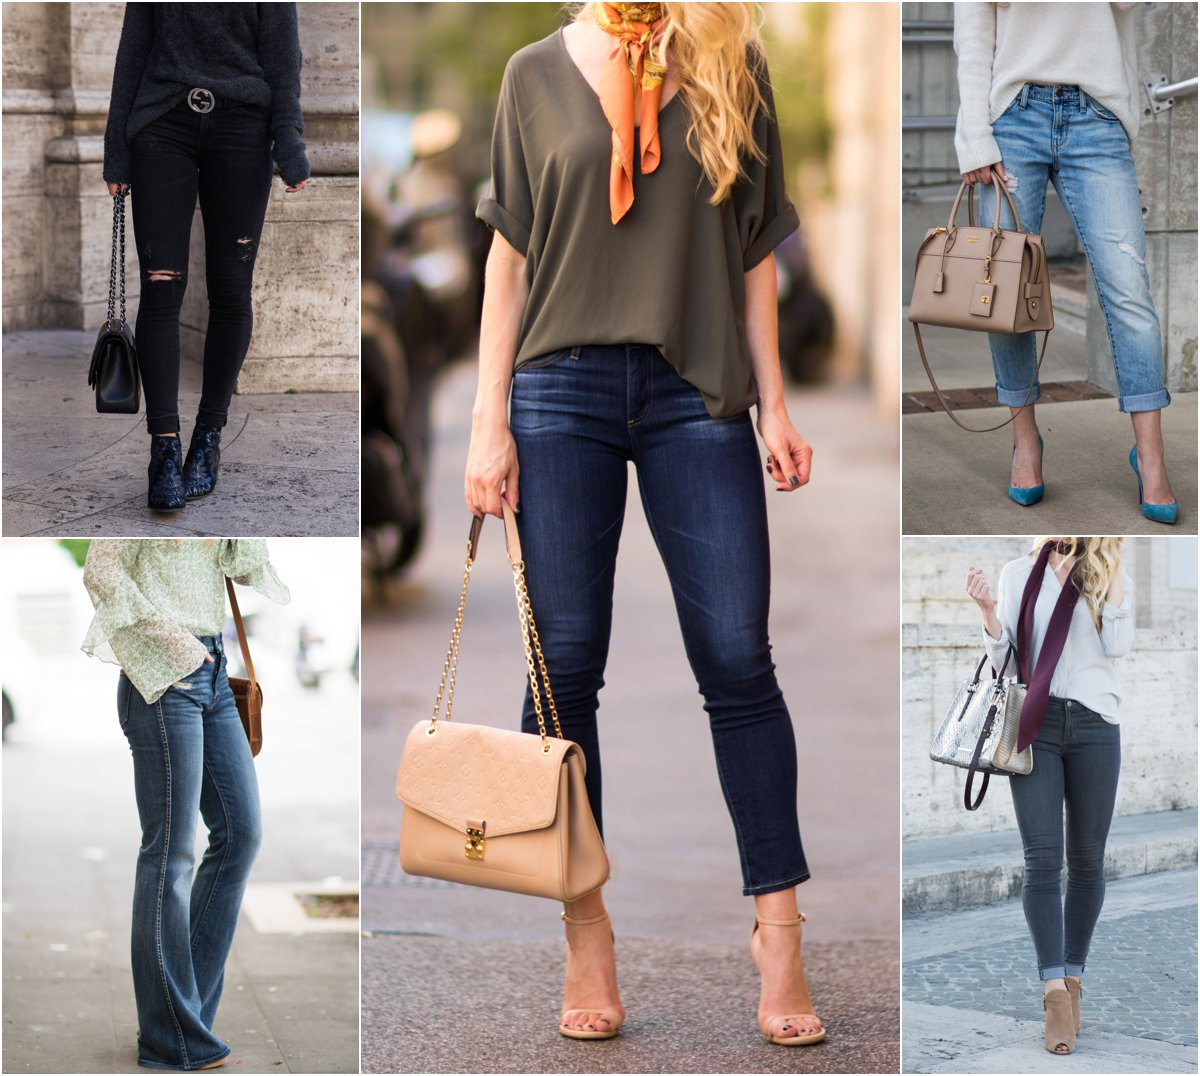 Must-Have Jeans for Women